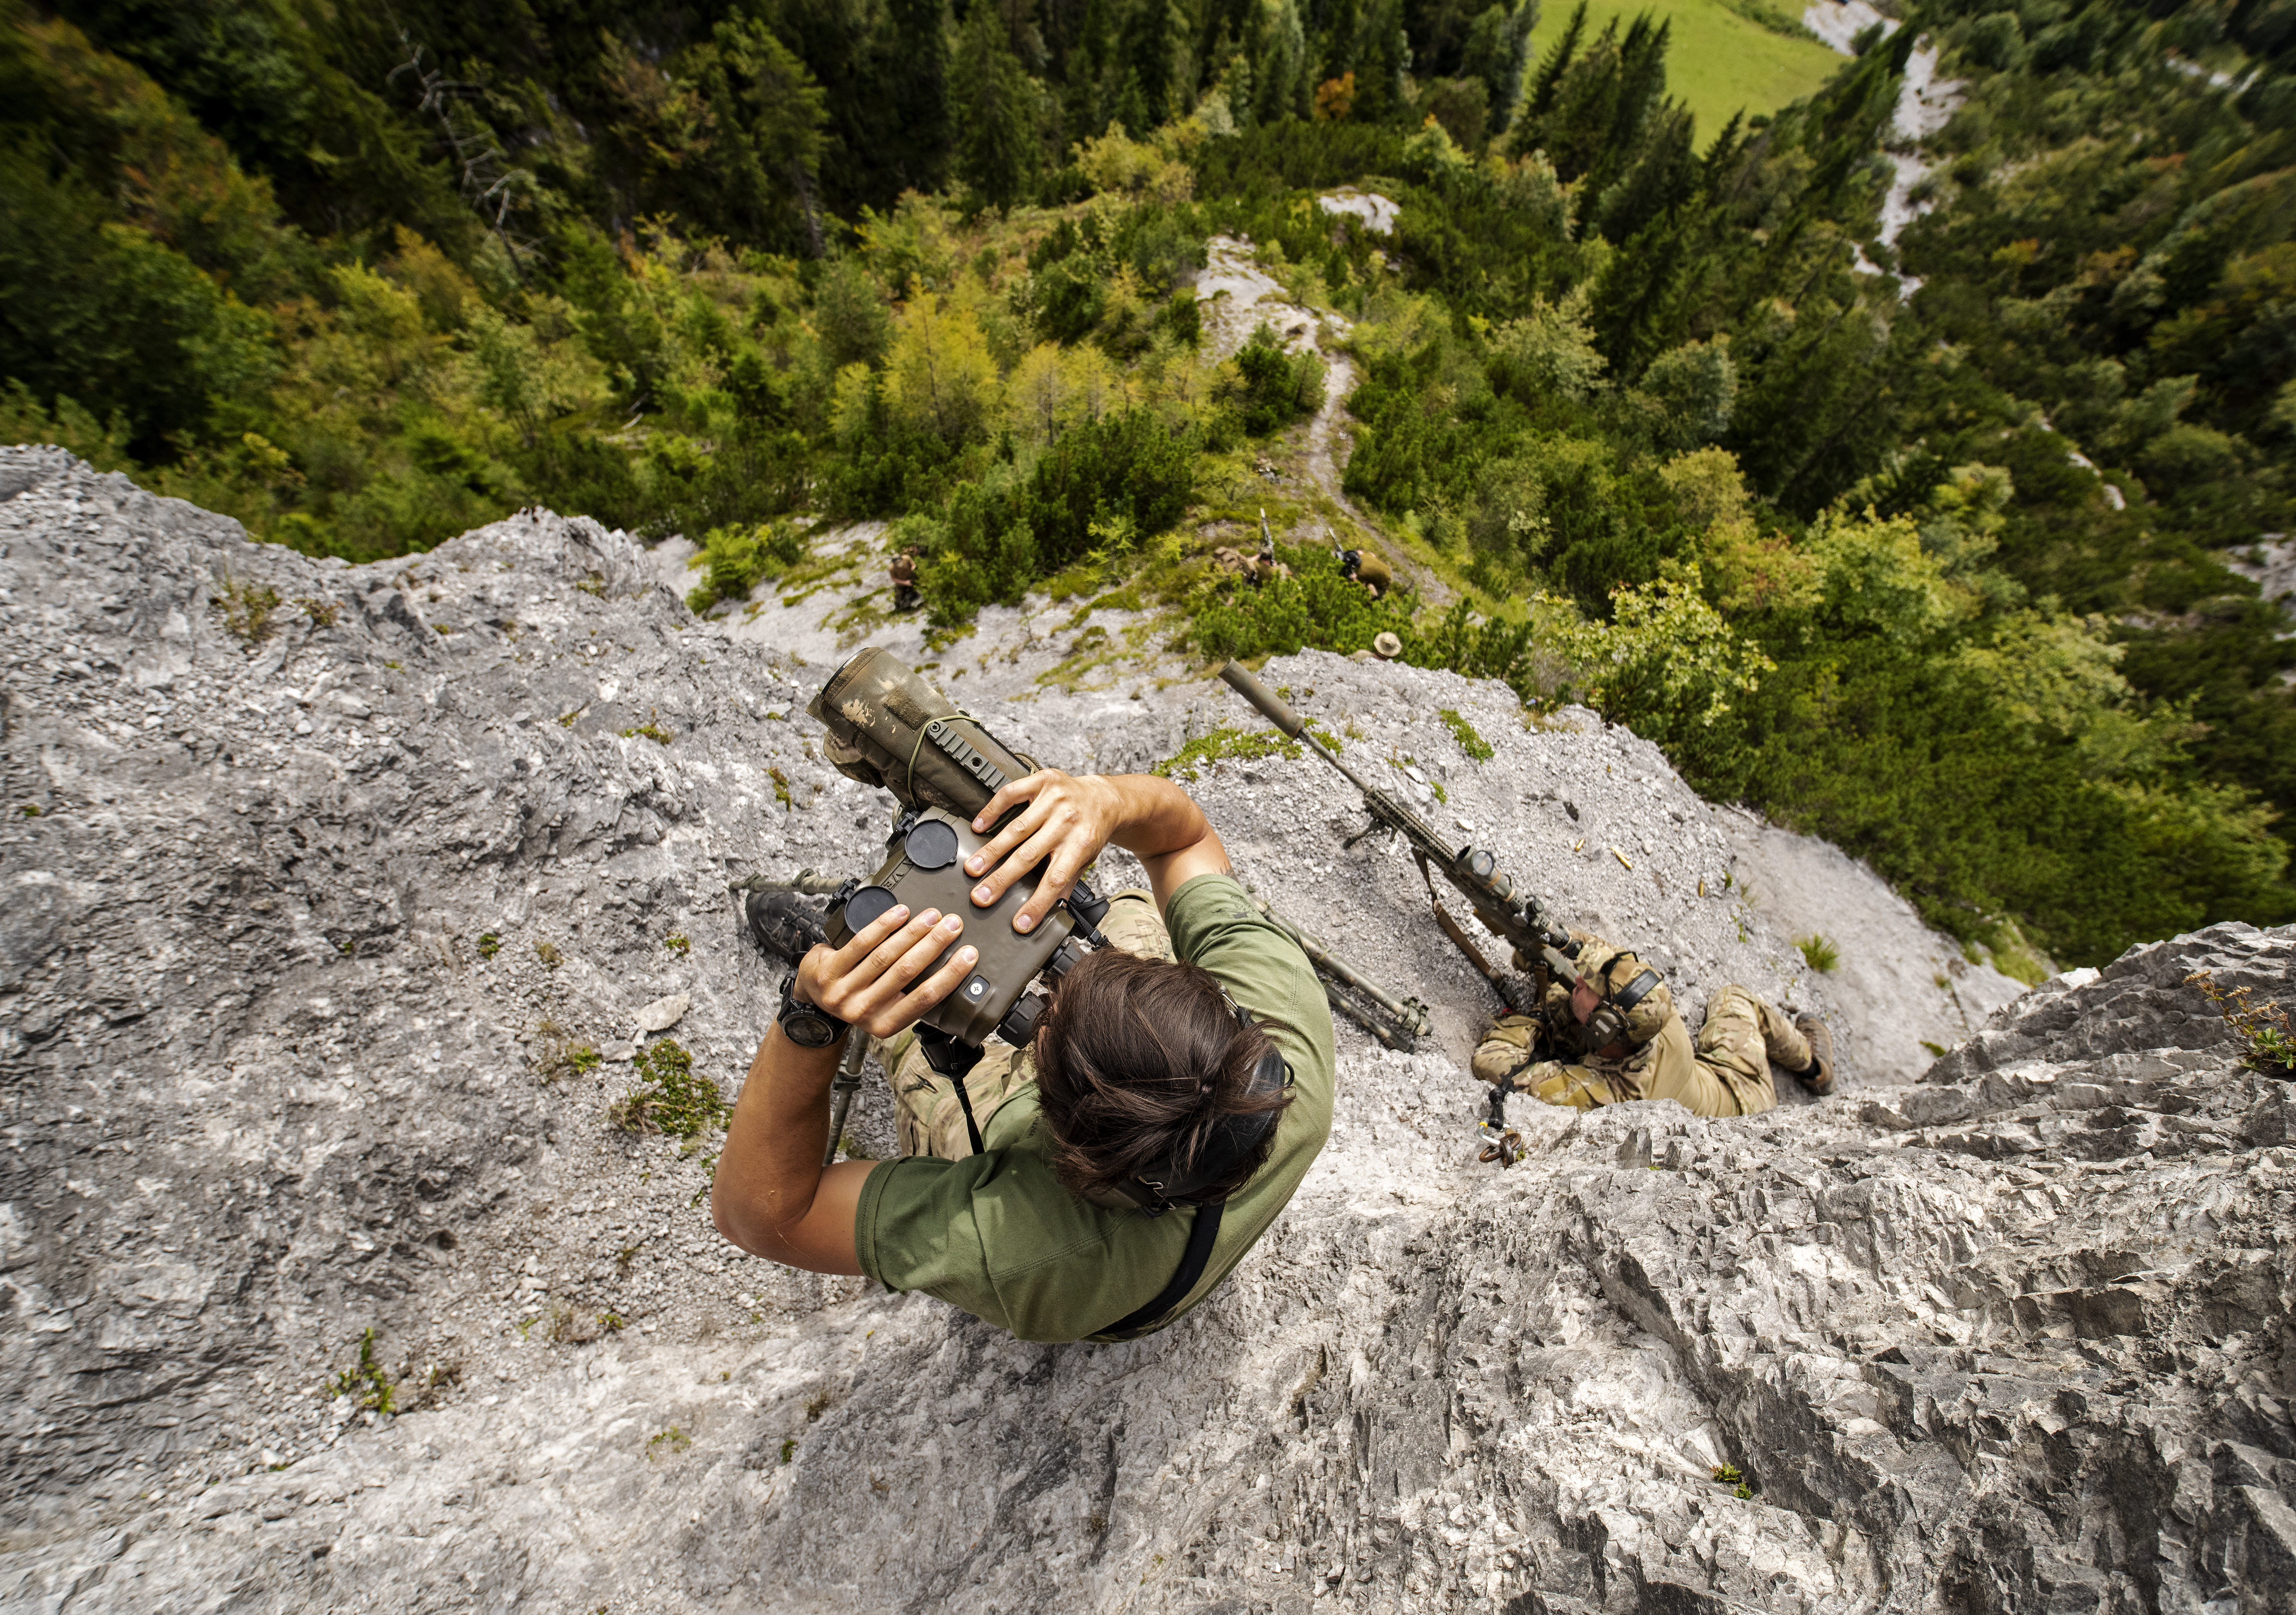 A Belgian Special Forces sniper team identifies targets 2000 meters away, across a valley on Sept. 11, 2018 during the International Special Training Centre High-Angle/Urban Course at the Hochfilzen Training Area, Austria. The high-angle portion of the two-week course is designed to teach trained sniper teams the necessary skills operating in mountainous terrain. (U.S. Army photo by 1st Lt. Benjamin Haulenbeek)